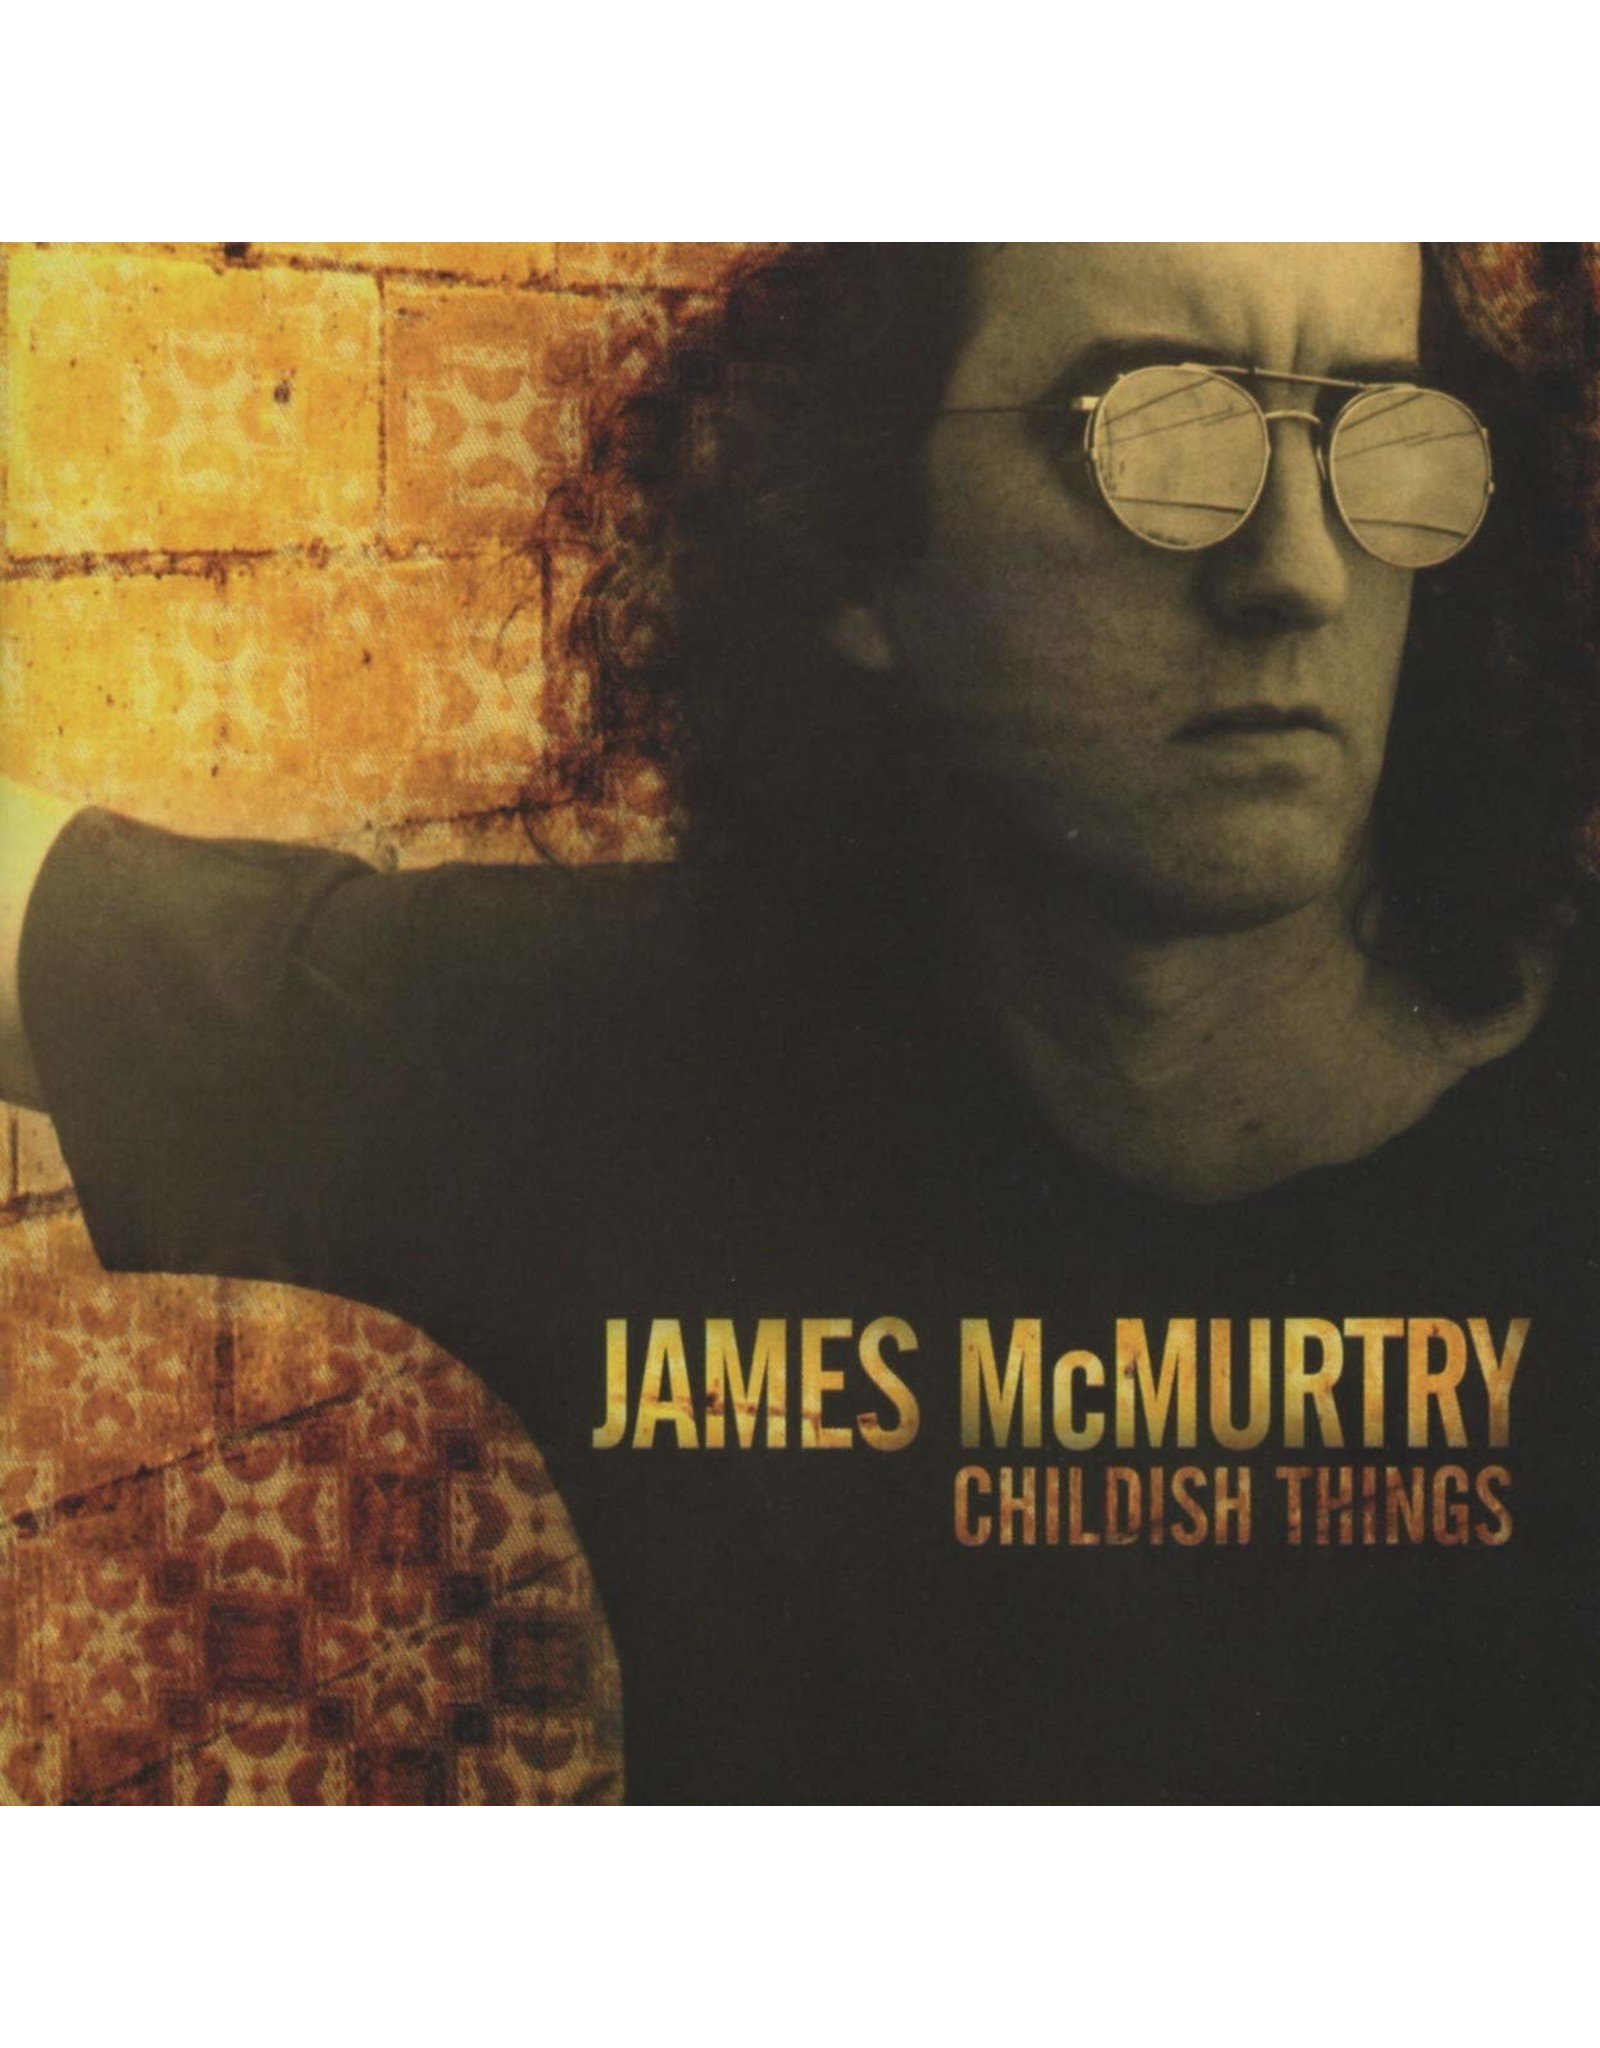 McMurtry, James - Childish Things LP (Record Store Day 2020 Transparent Blue Vinyl Exclusive)